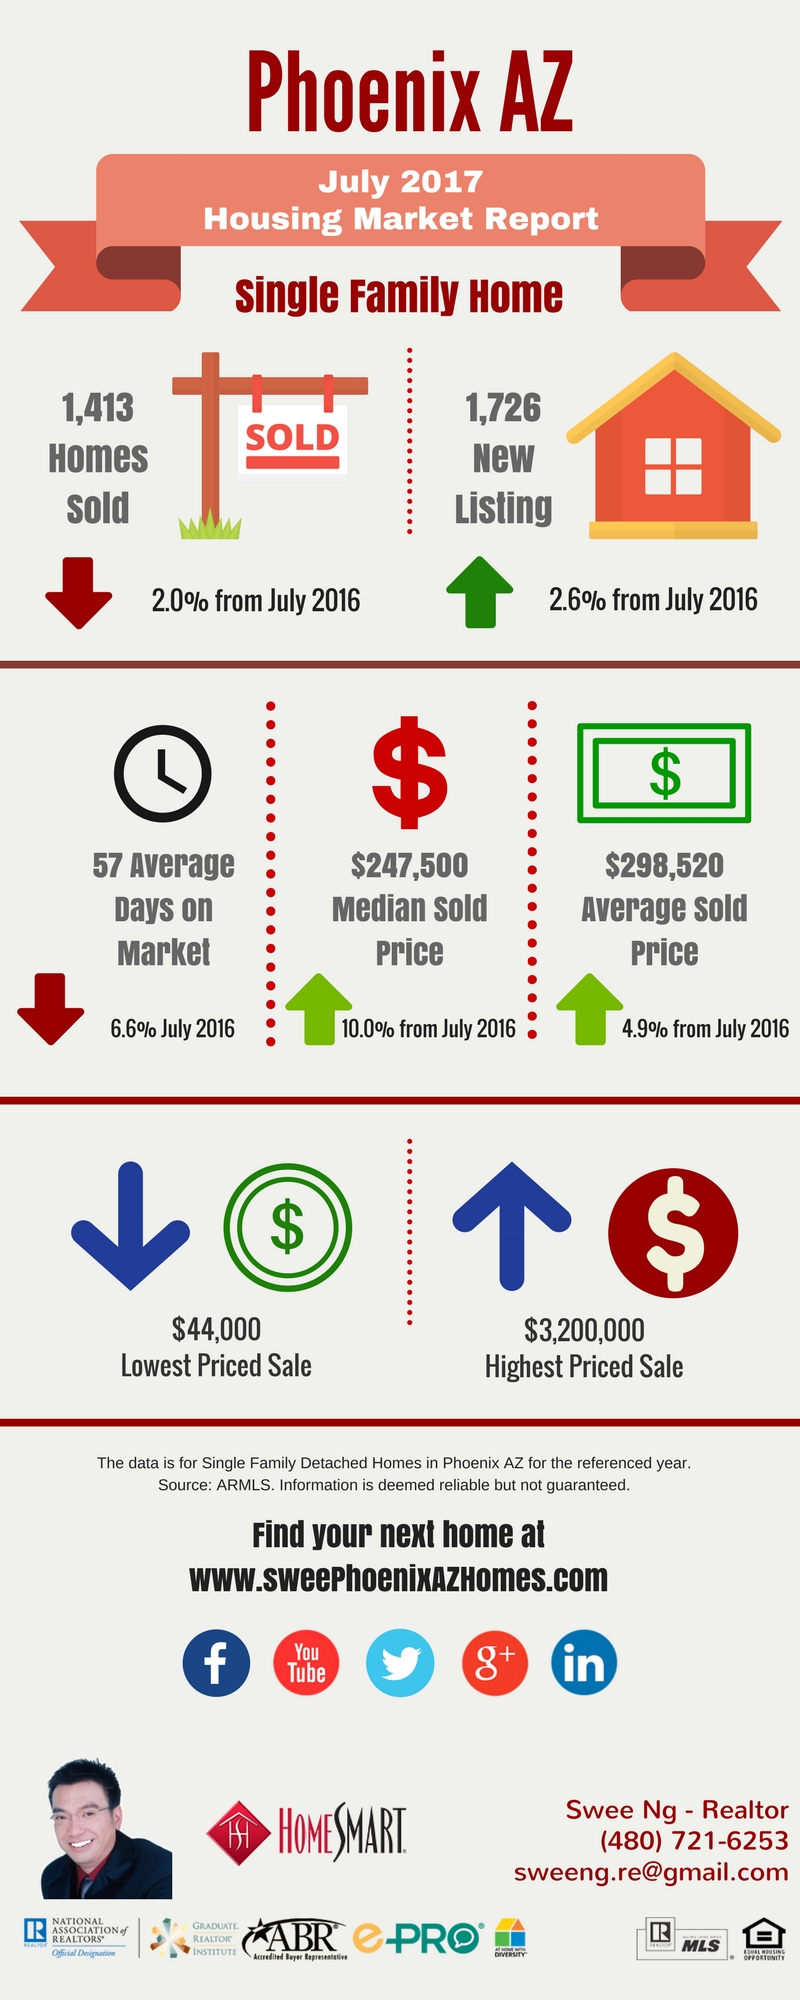 Phoenix AZ Housing Market Trends Report July 2017 by Swee Ng